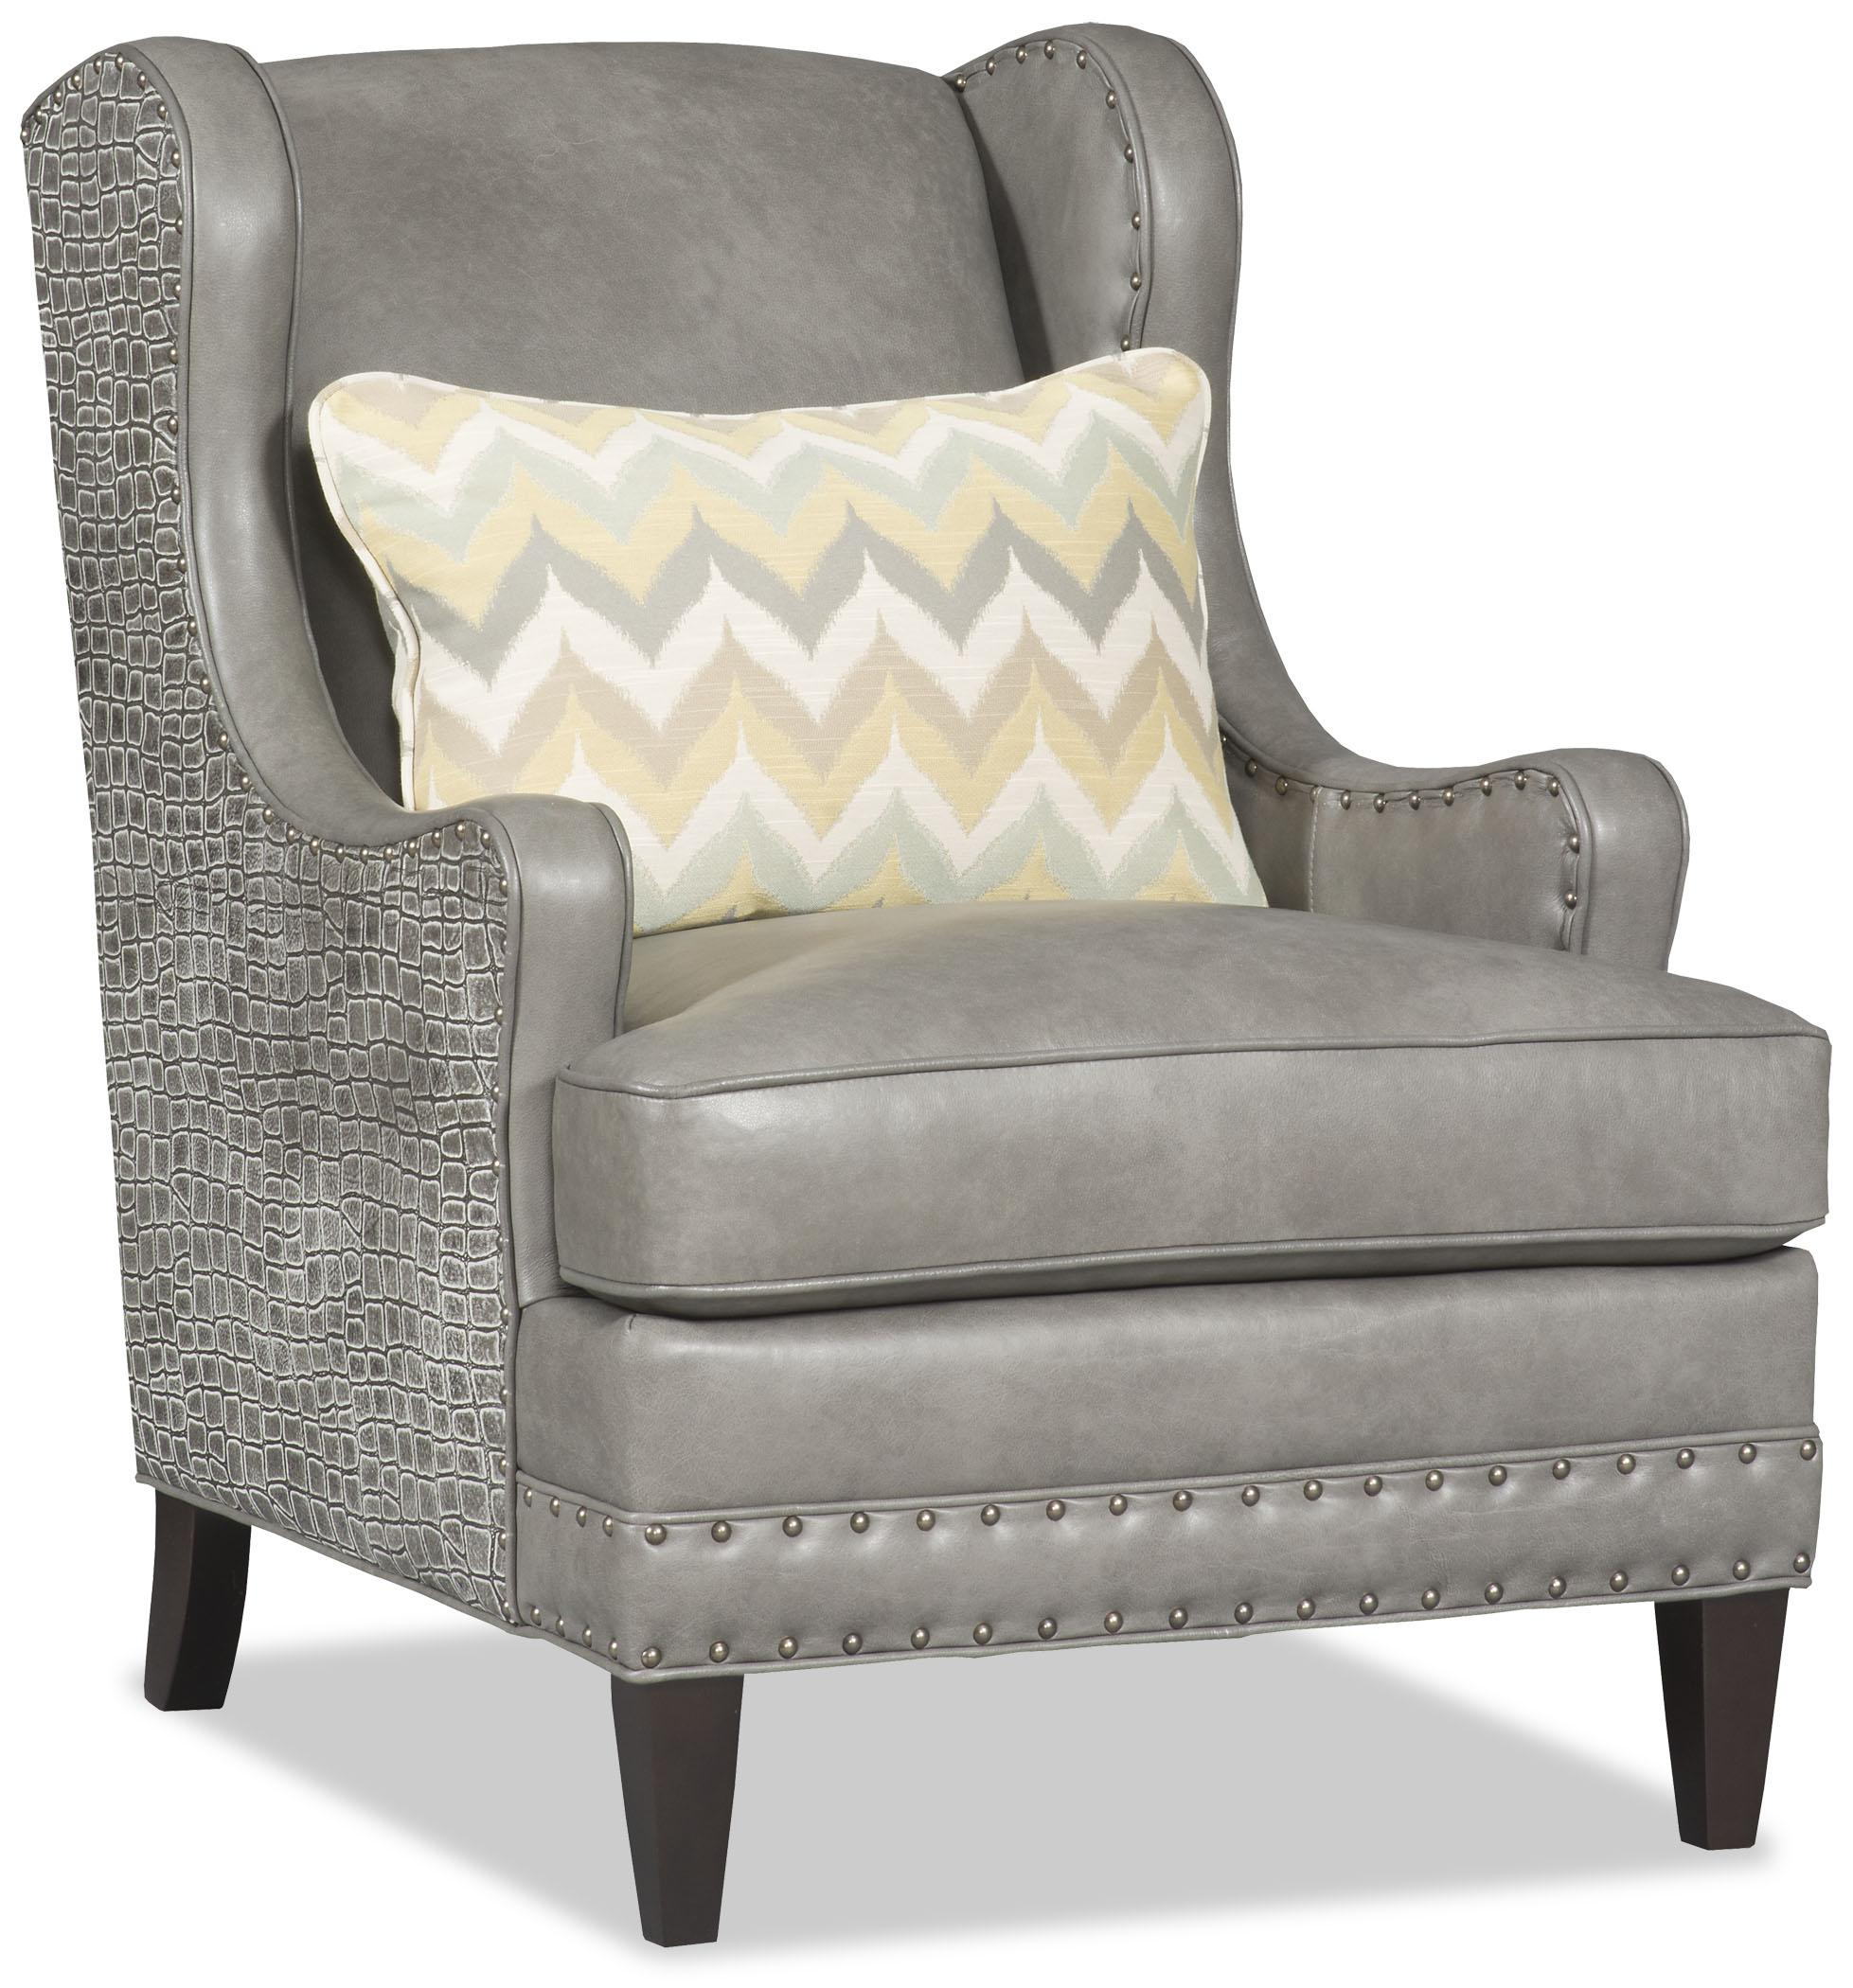 Club Chairs Cagney Wing Back Club Chair With Nailheads By Bradington Young